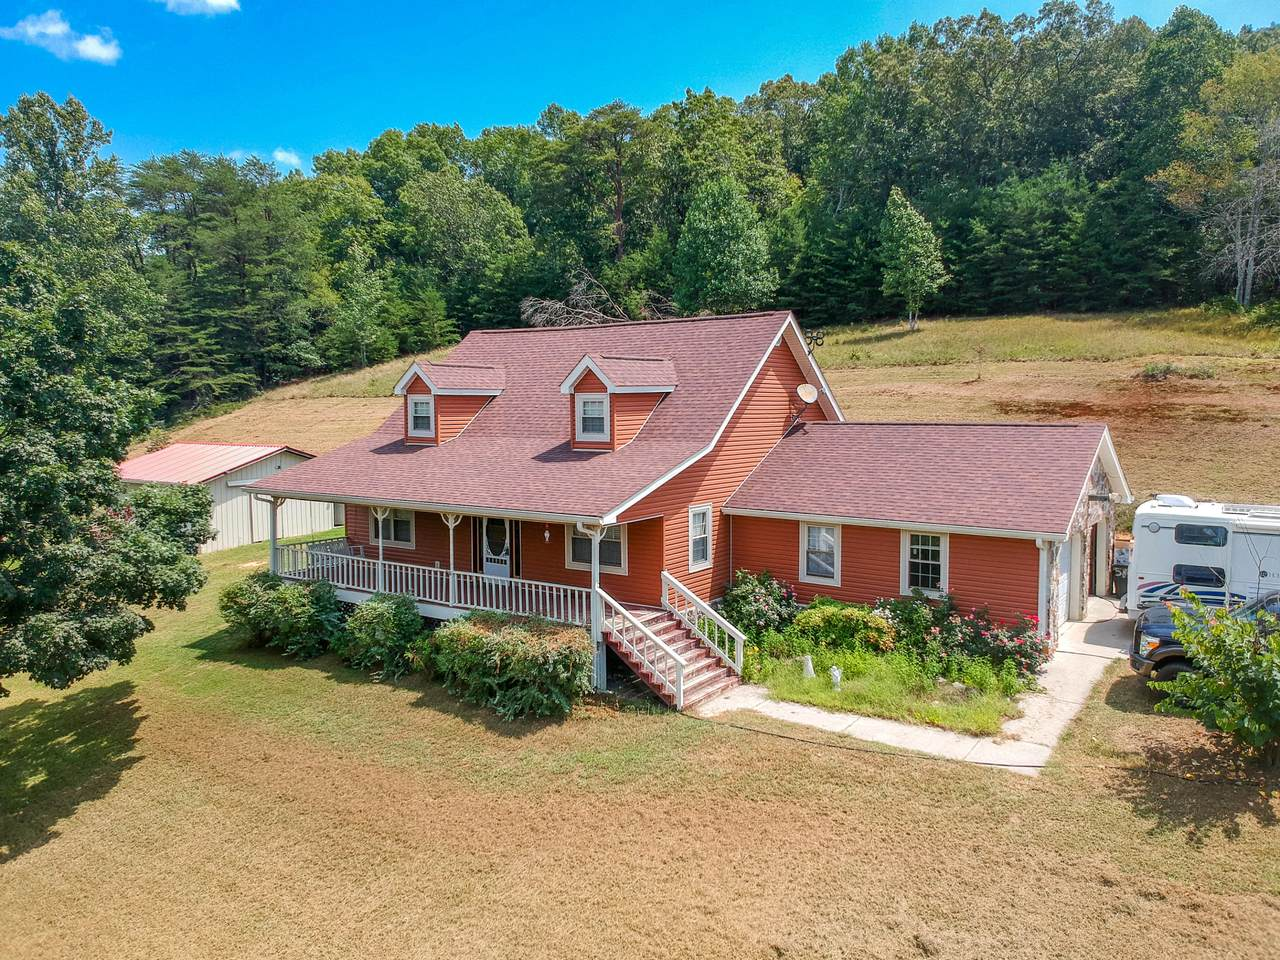 584 Maley Hollow Rd - Photo 1